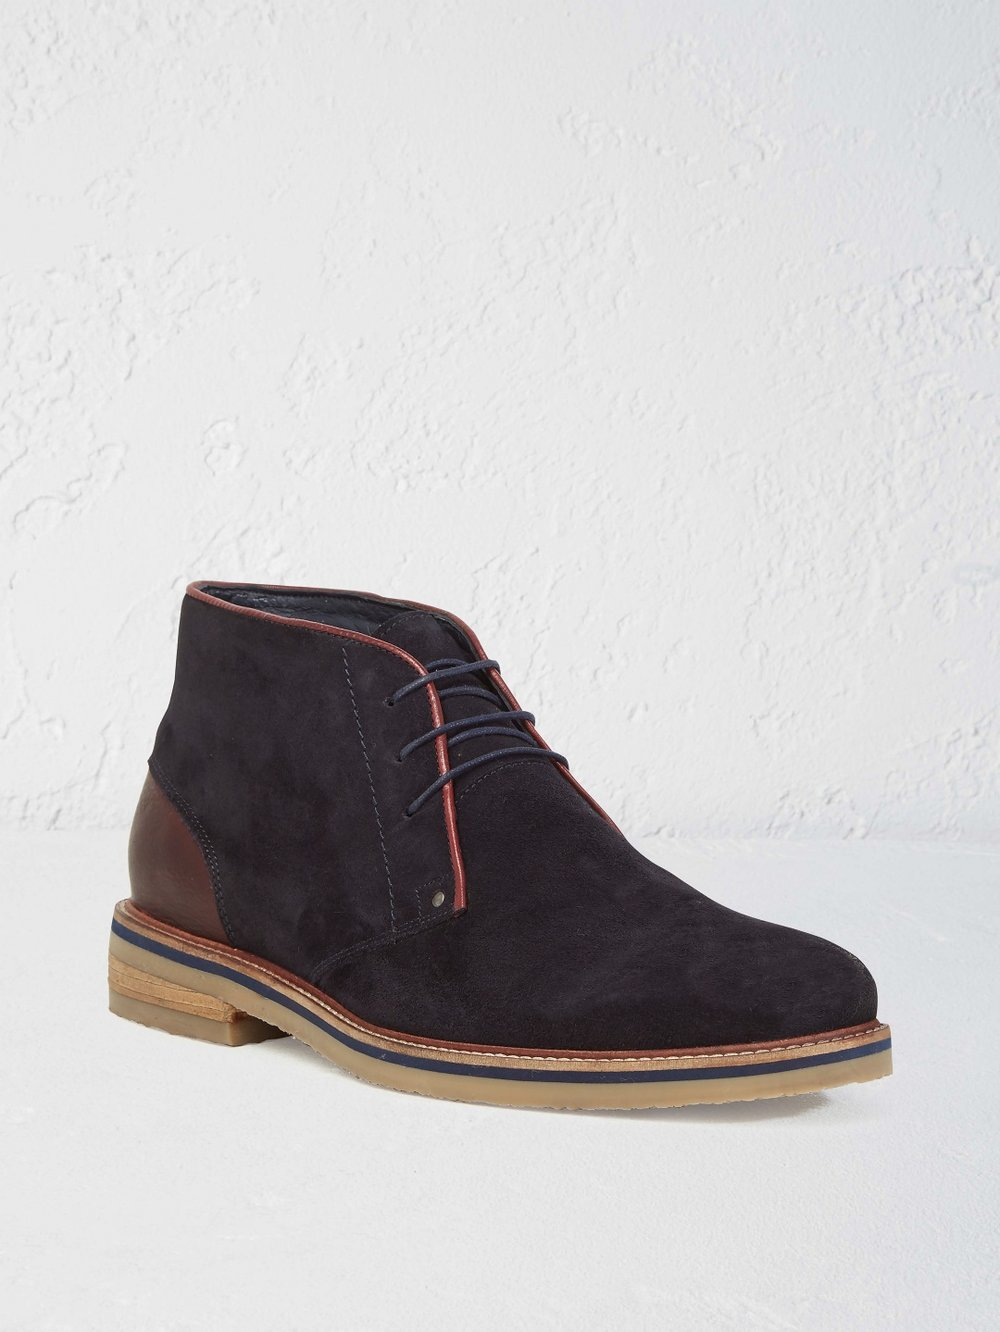 White Stuff: Johnny Lace up Boot: £79.95